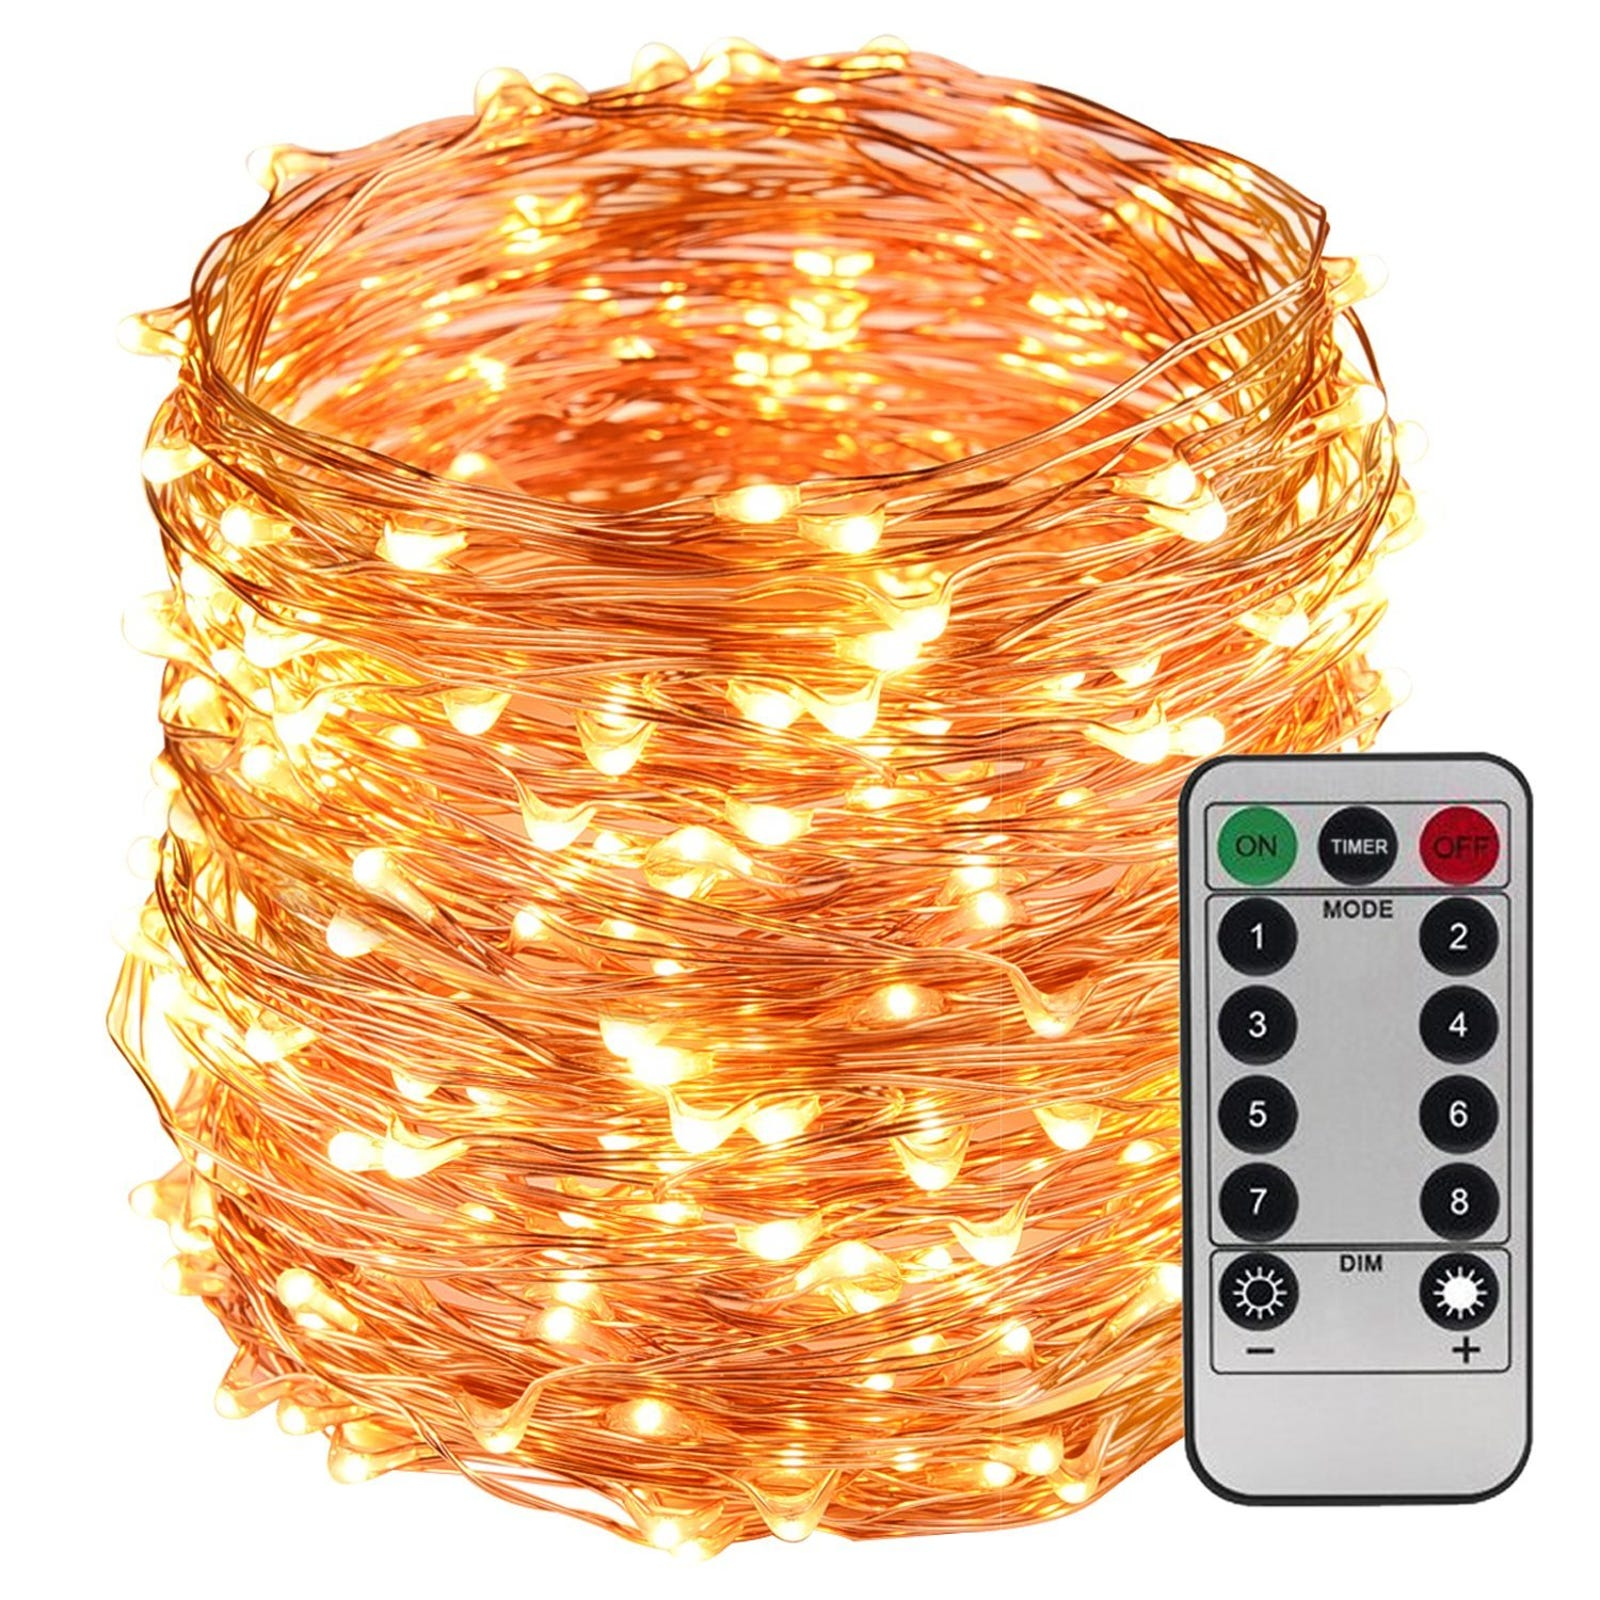 Take 30 % off LightsEtc 200 LED String White Waterproof Light with 8 Modes Remote Control